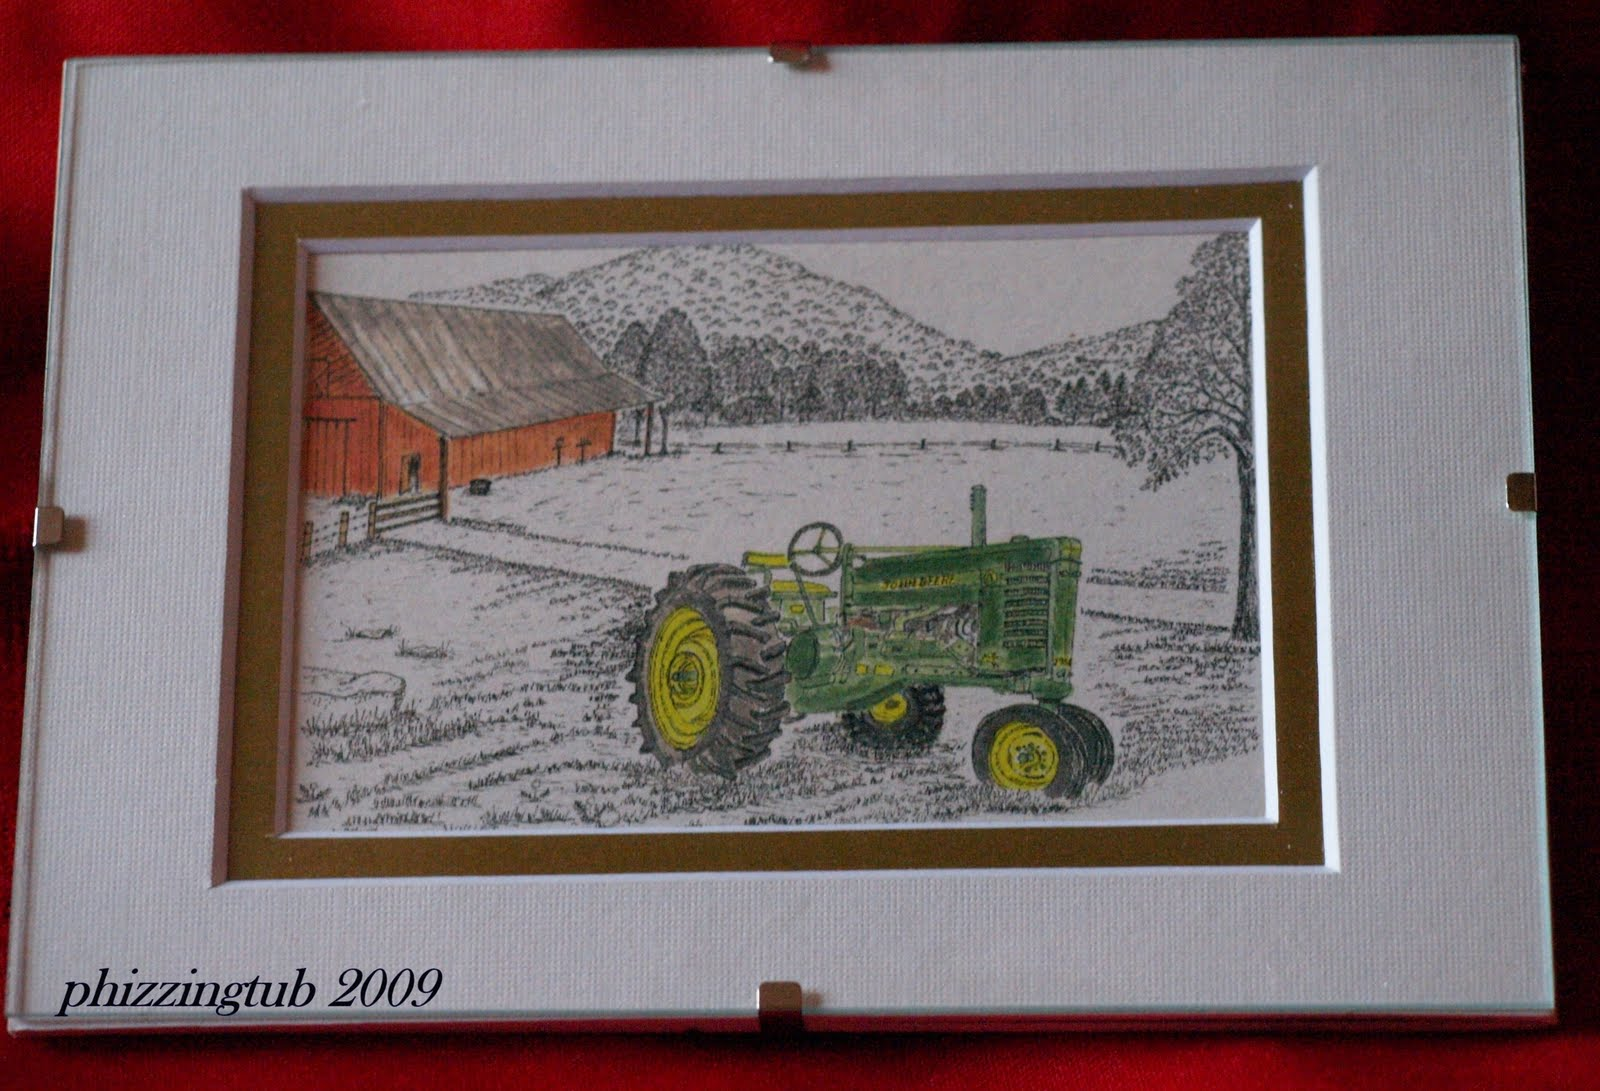 John deere drawings for dad the phizzing tub john deere drawings for dad jeuxipadfo Images